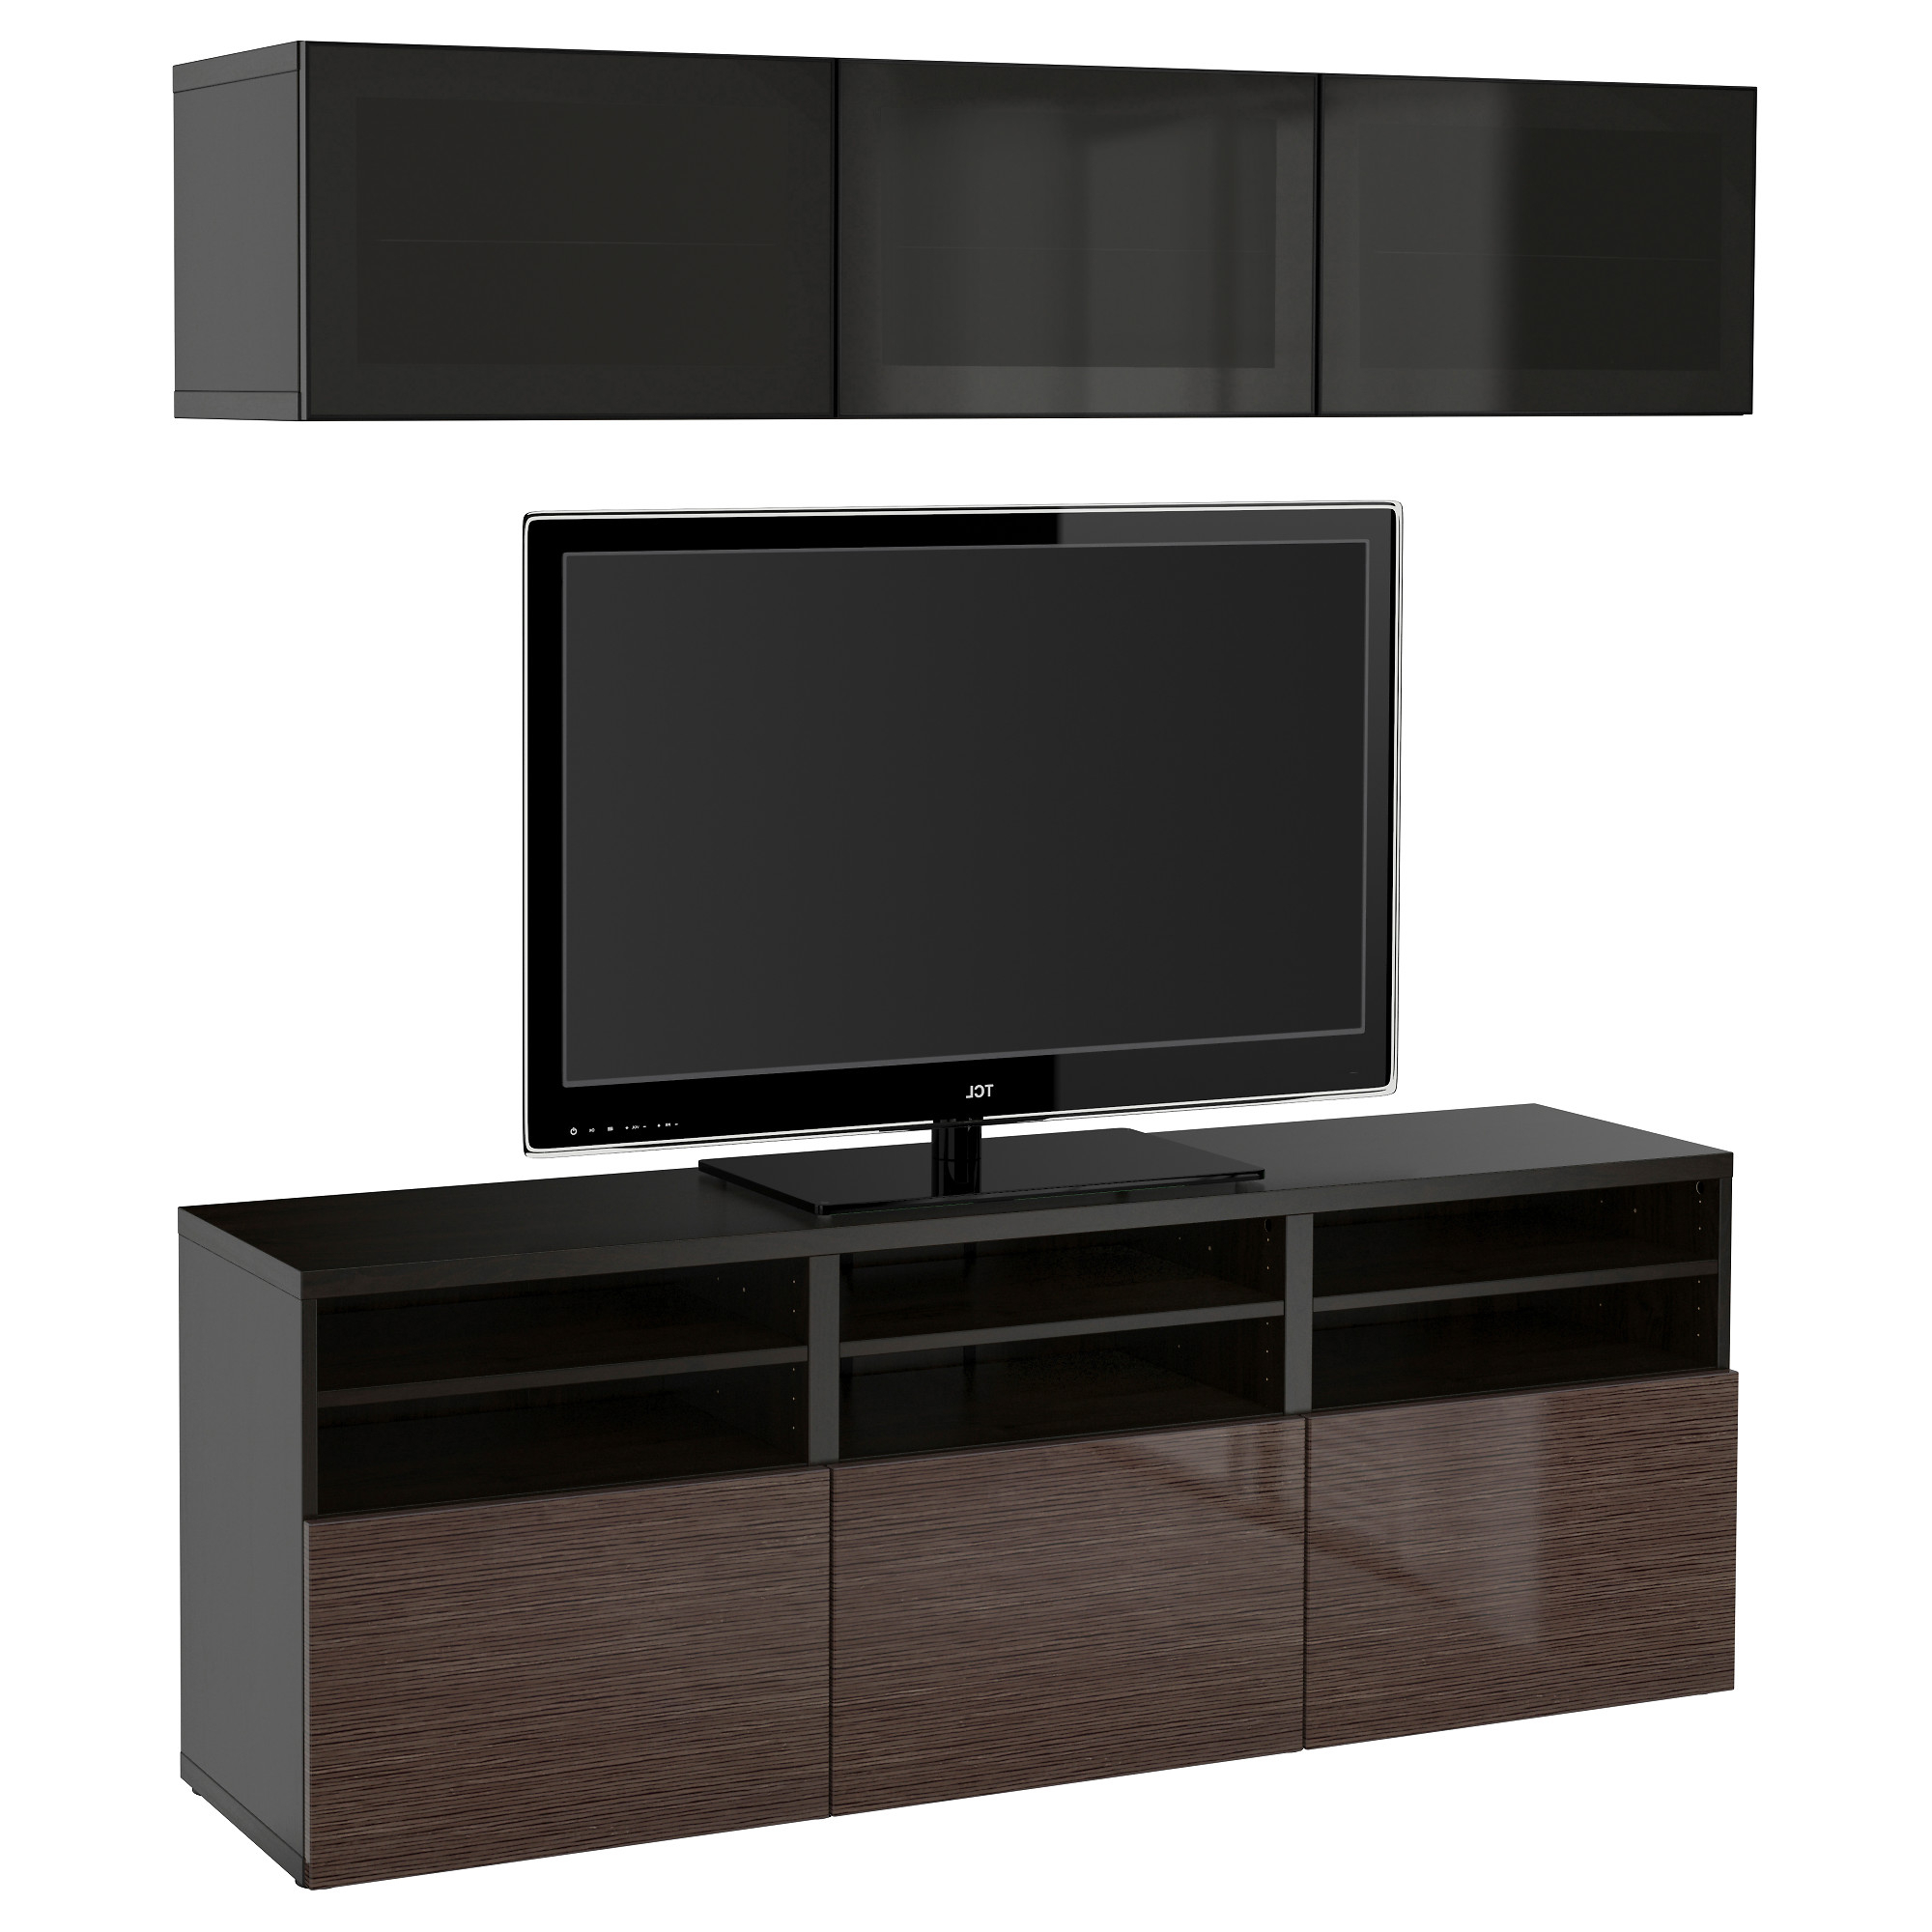 Hokku Tv Stands Regarding Well Known Admirable Hokku Design Tv Stand With Black Coloue And Brown Door (View 8 of 20)